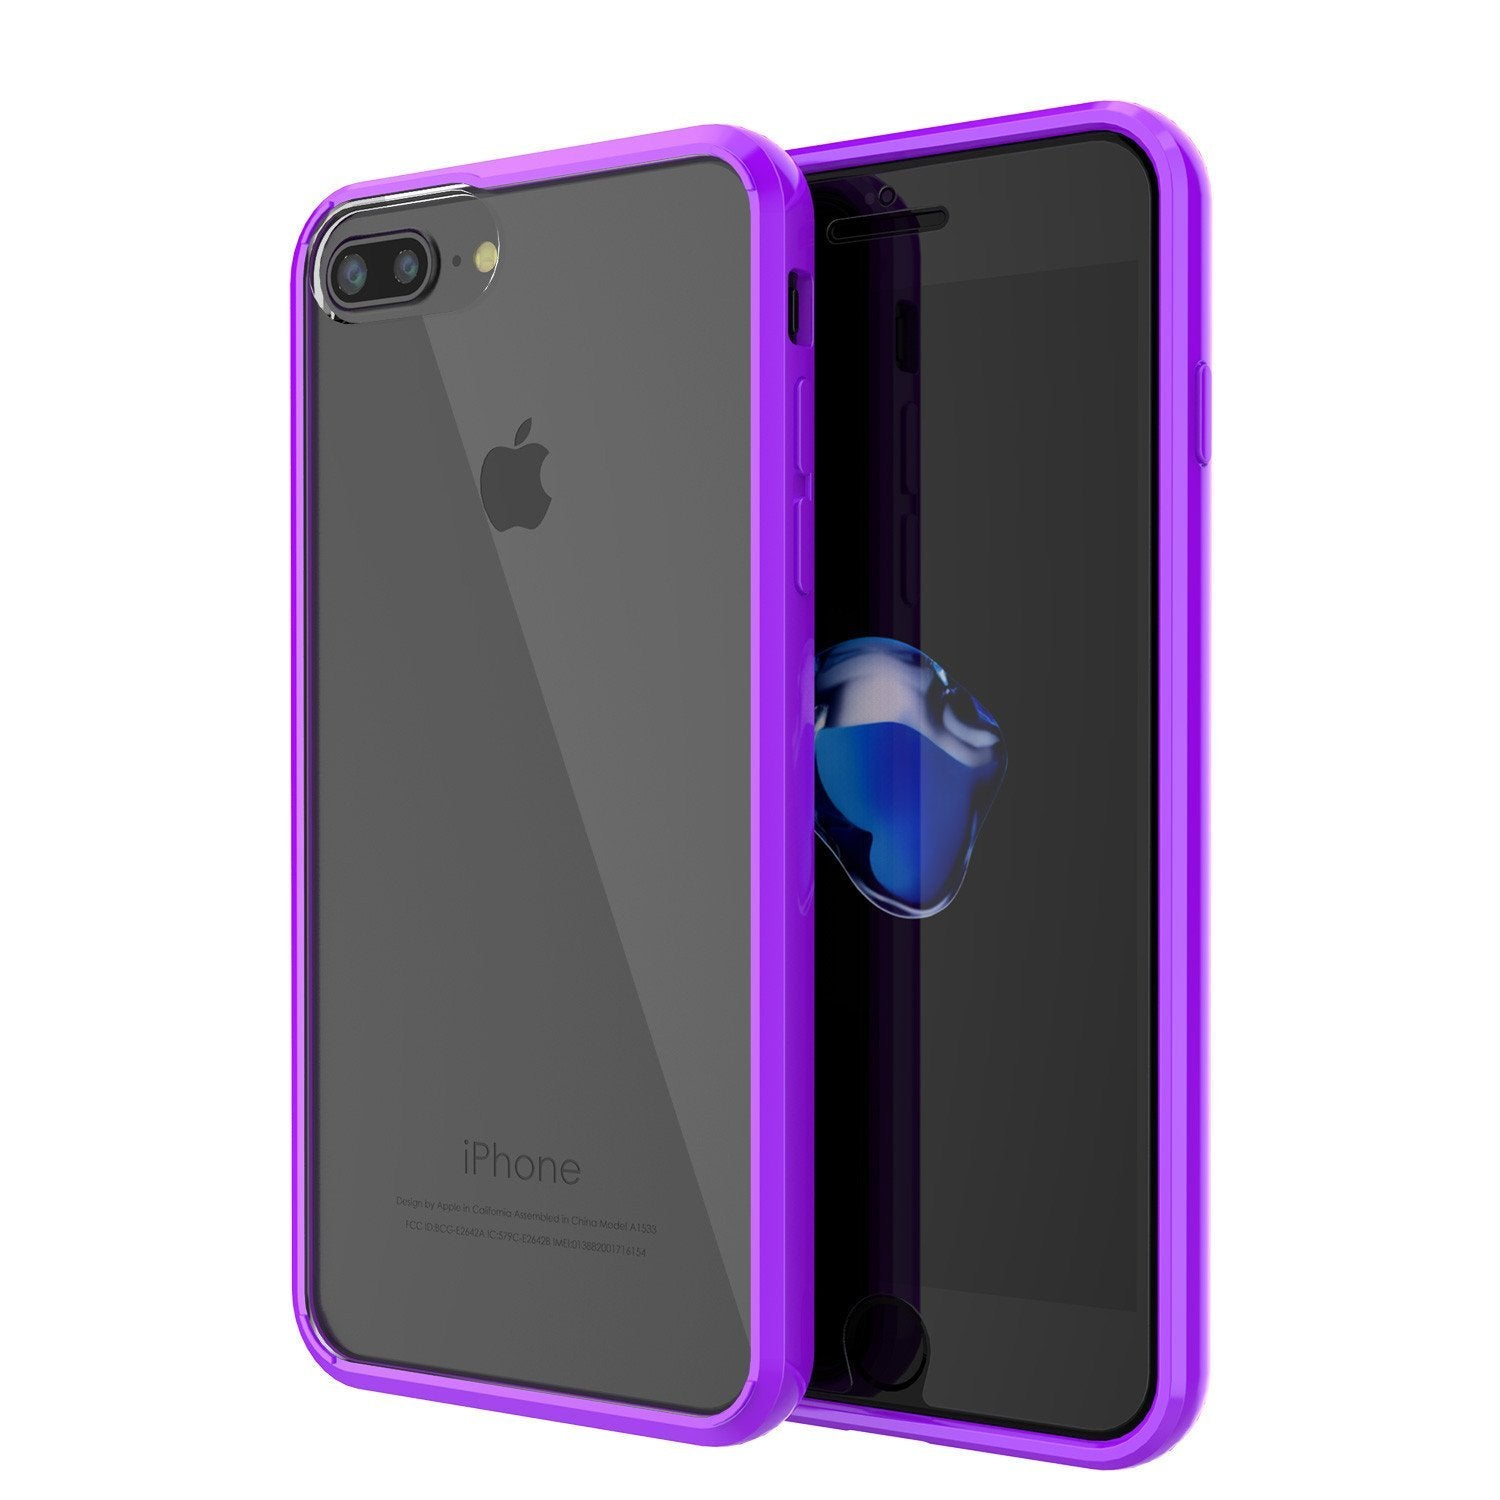 iPhone 8+ Plus Case PunkCase LUCID Clear Series for Apple iPhone 8+ Plus